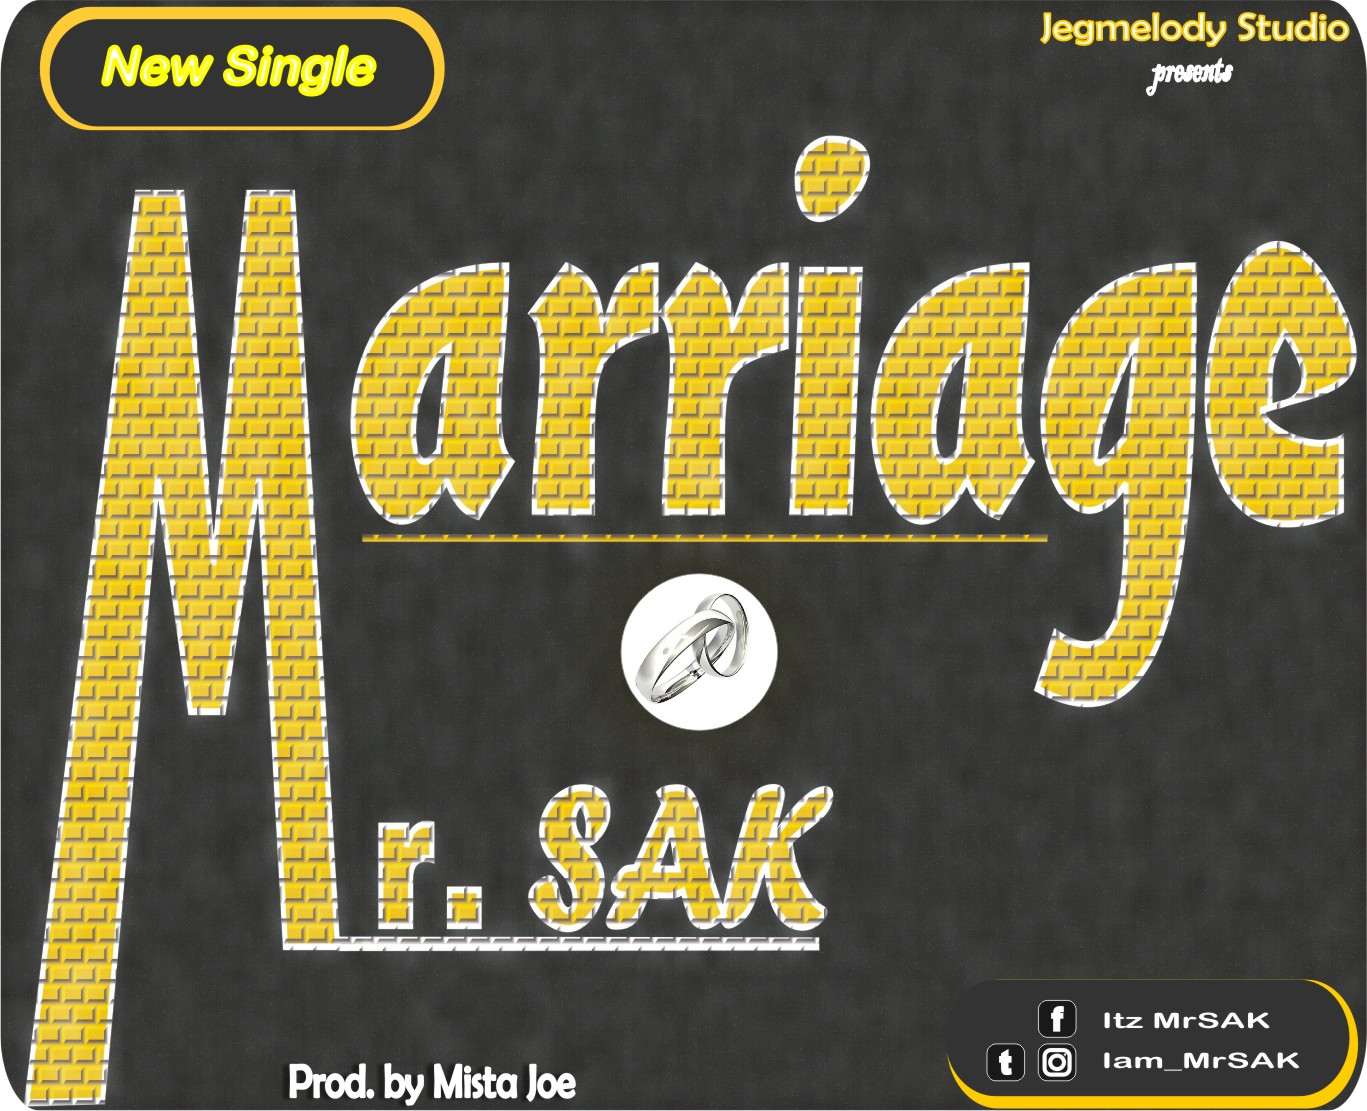 MARRIAGE BY Mr. SAK MP3 DOWNLOAD